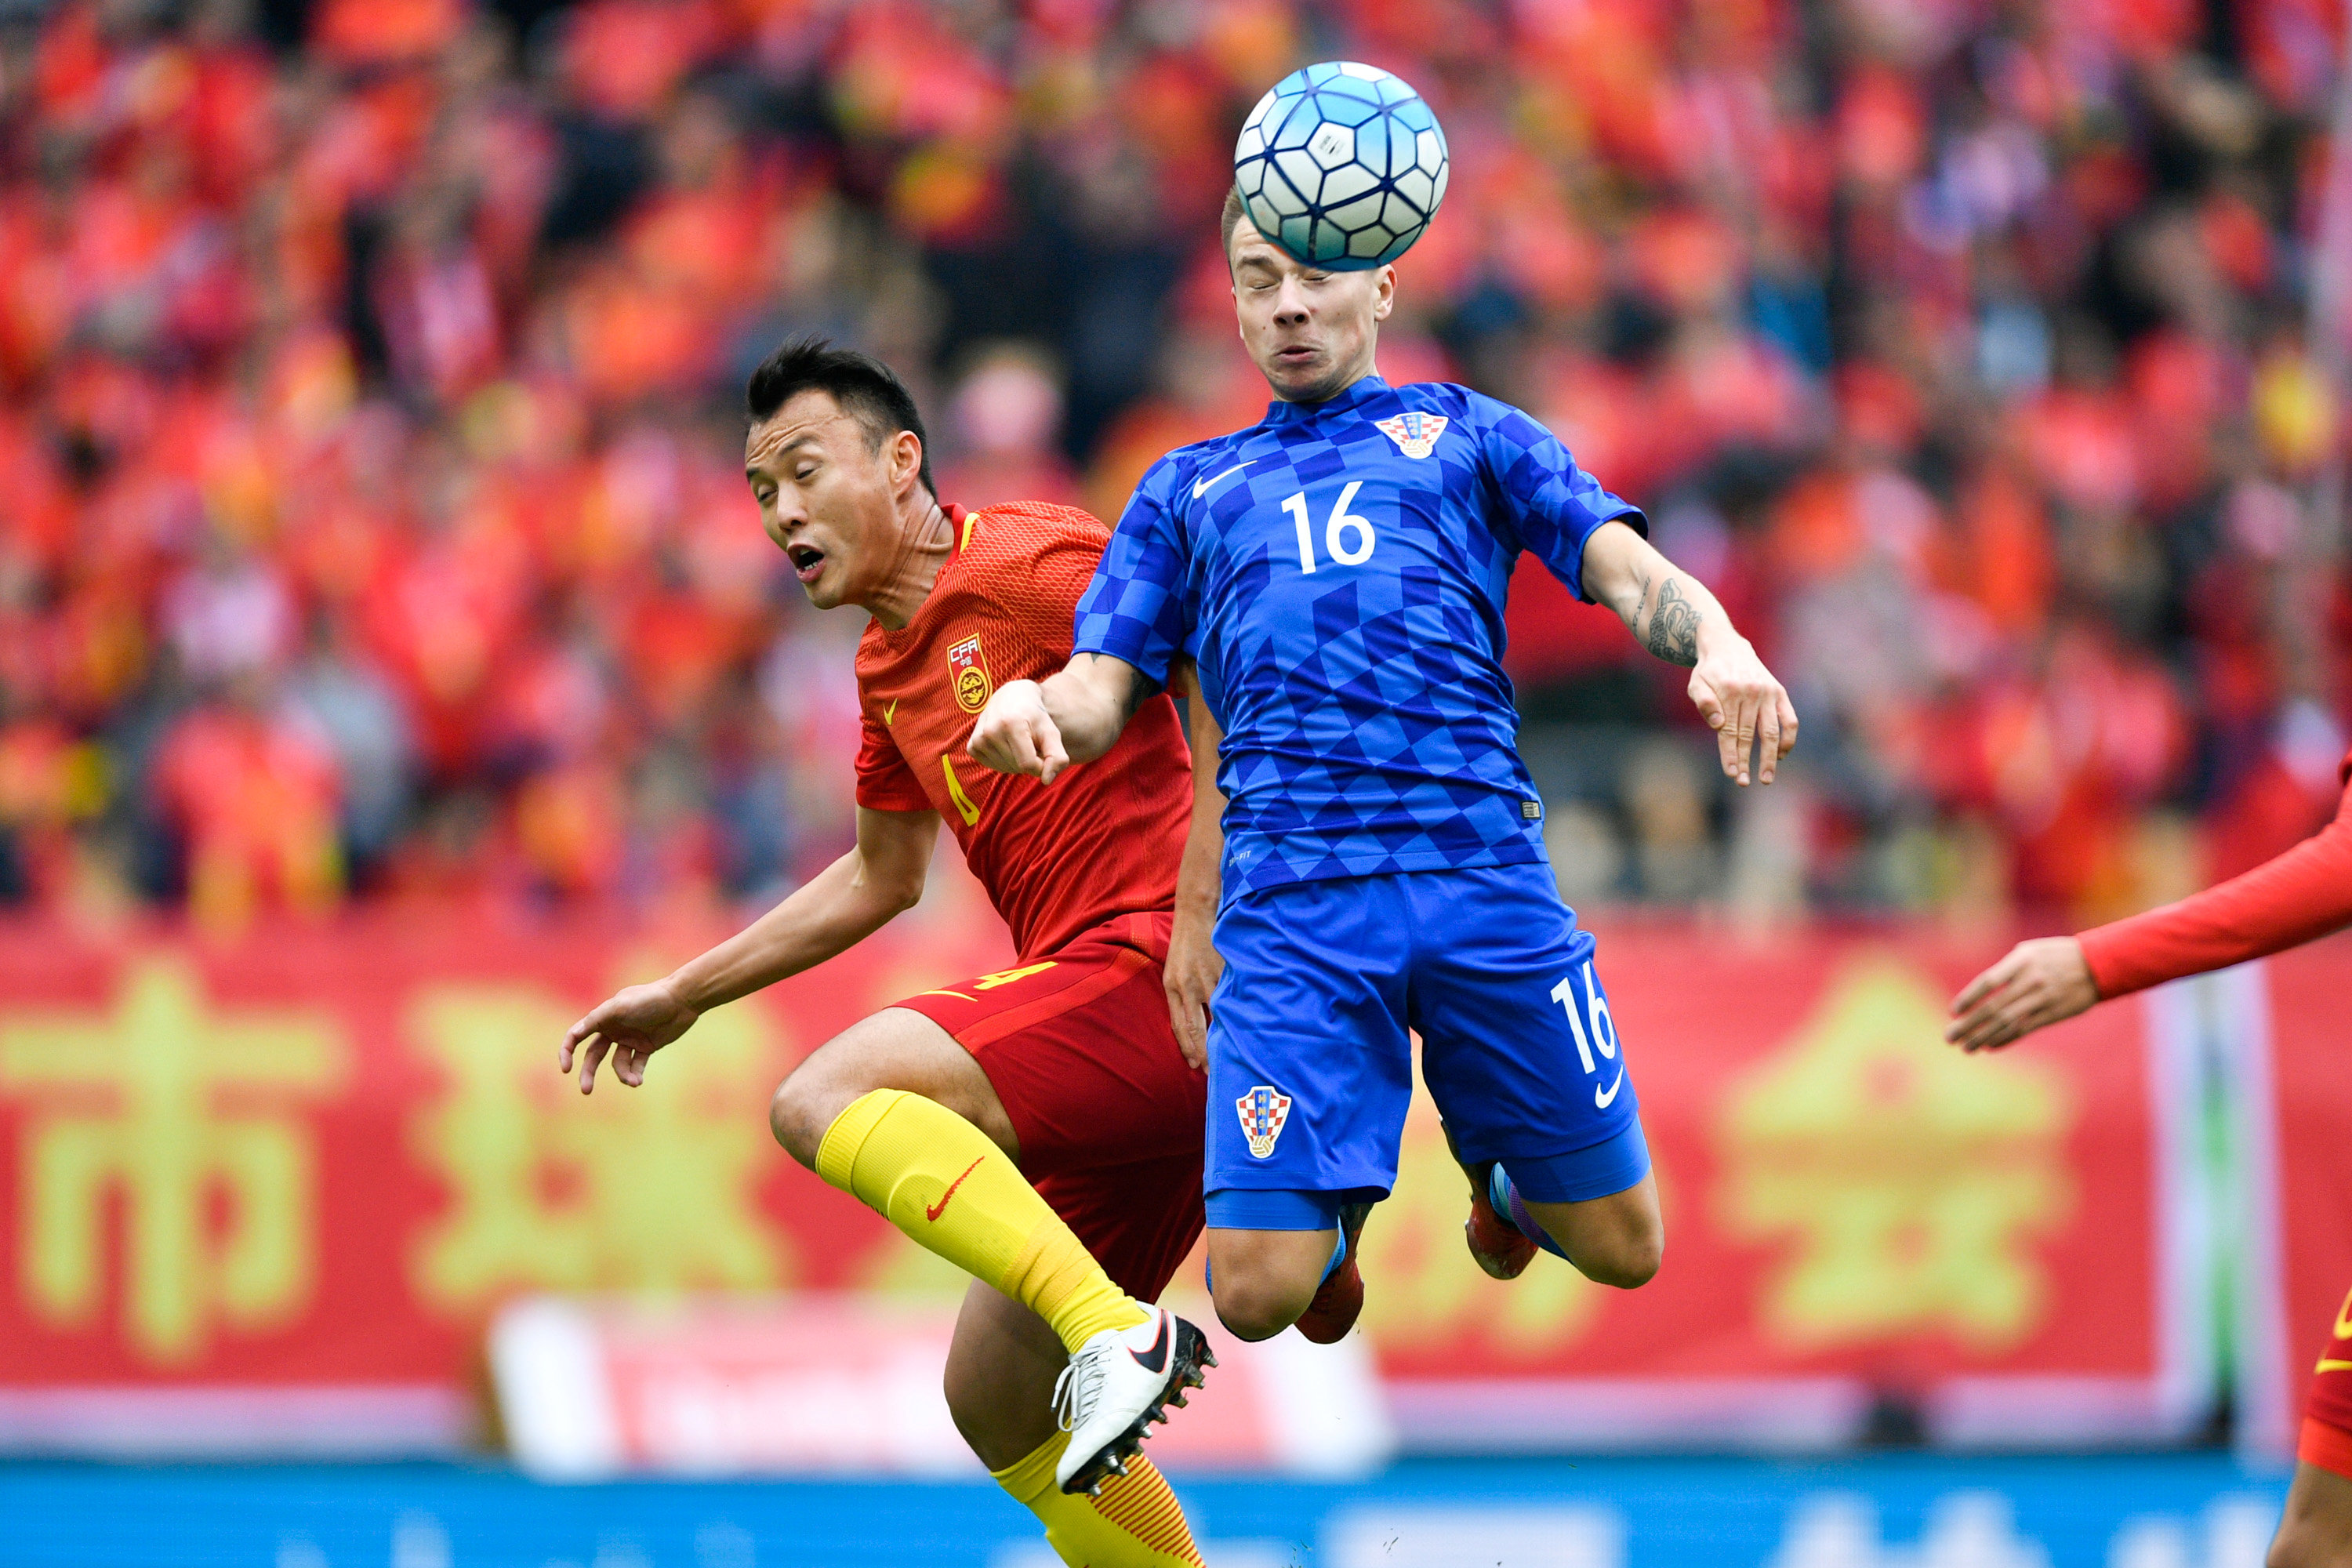 2017-01-14T081232Z_1767628969_RC1D75AA9310_RTRMADP_3_SOCCER-CHINACUP-CHN-CRO